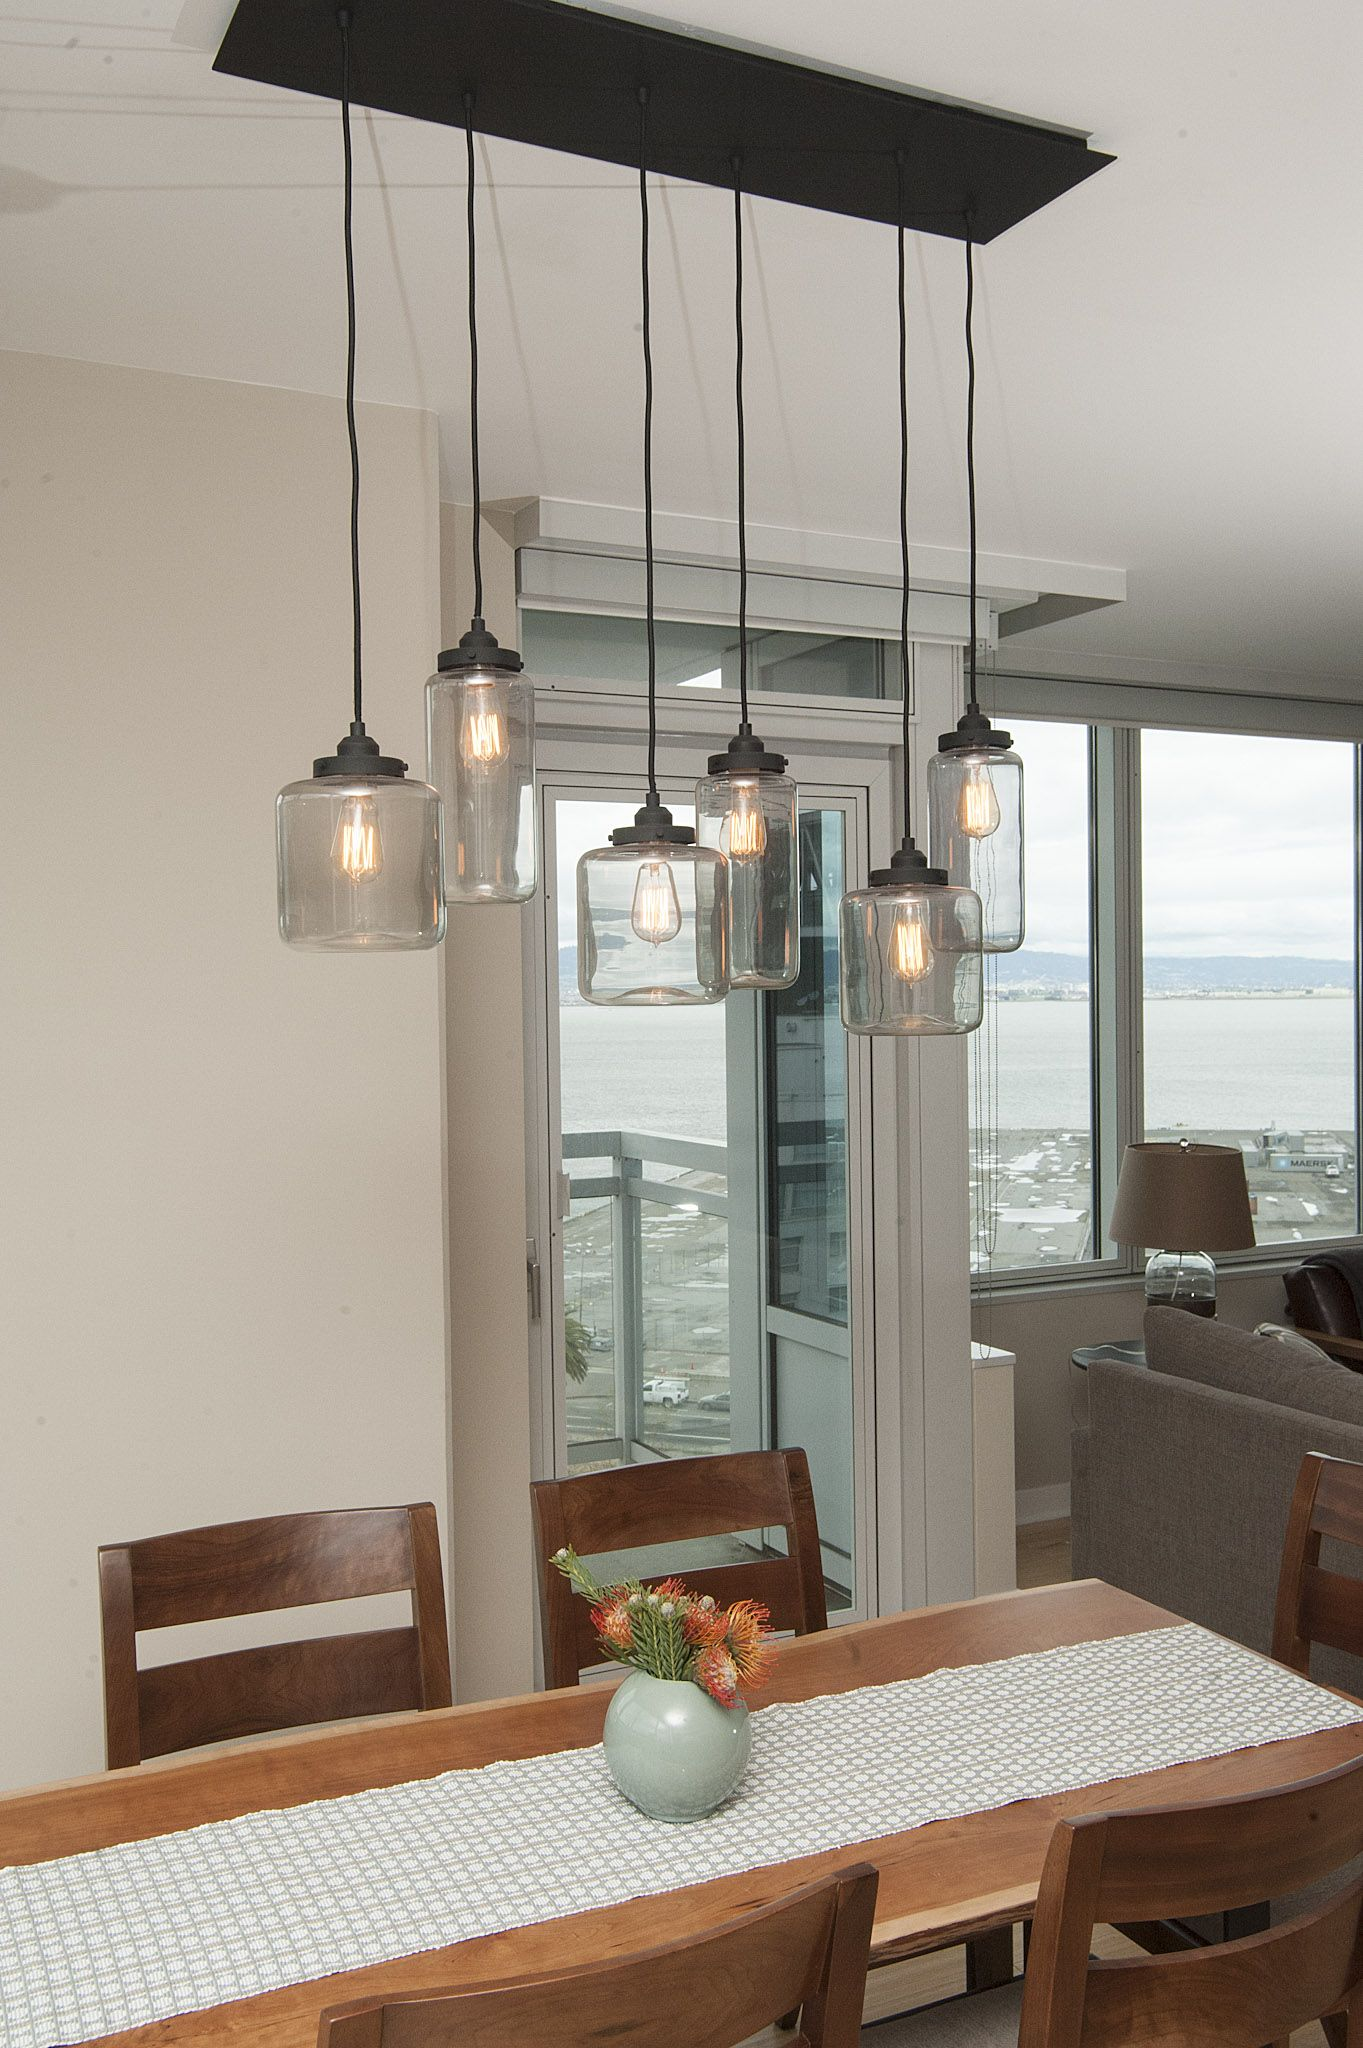 Mason Jar Light Fixture Jill Cordner Interior Design